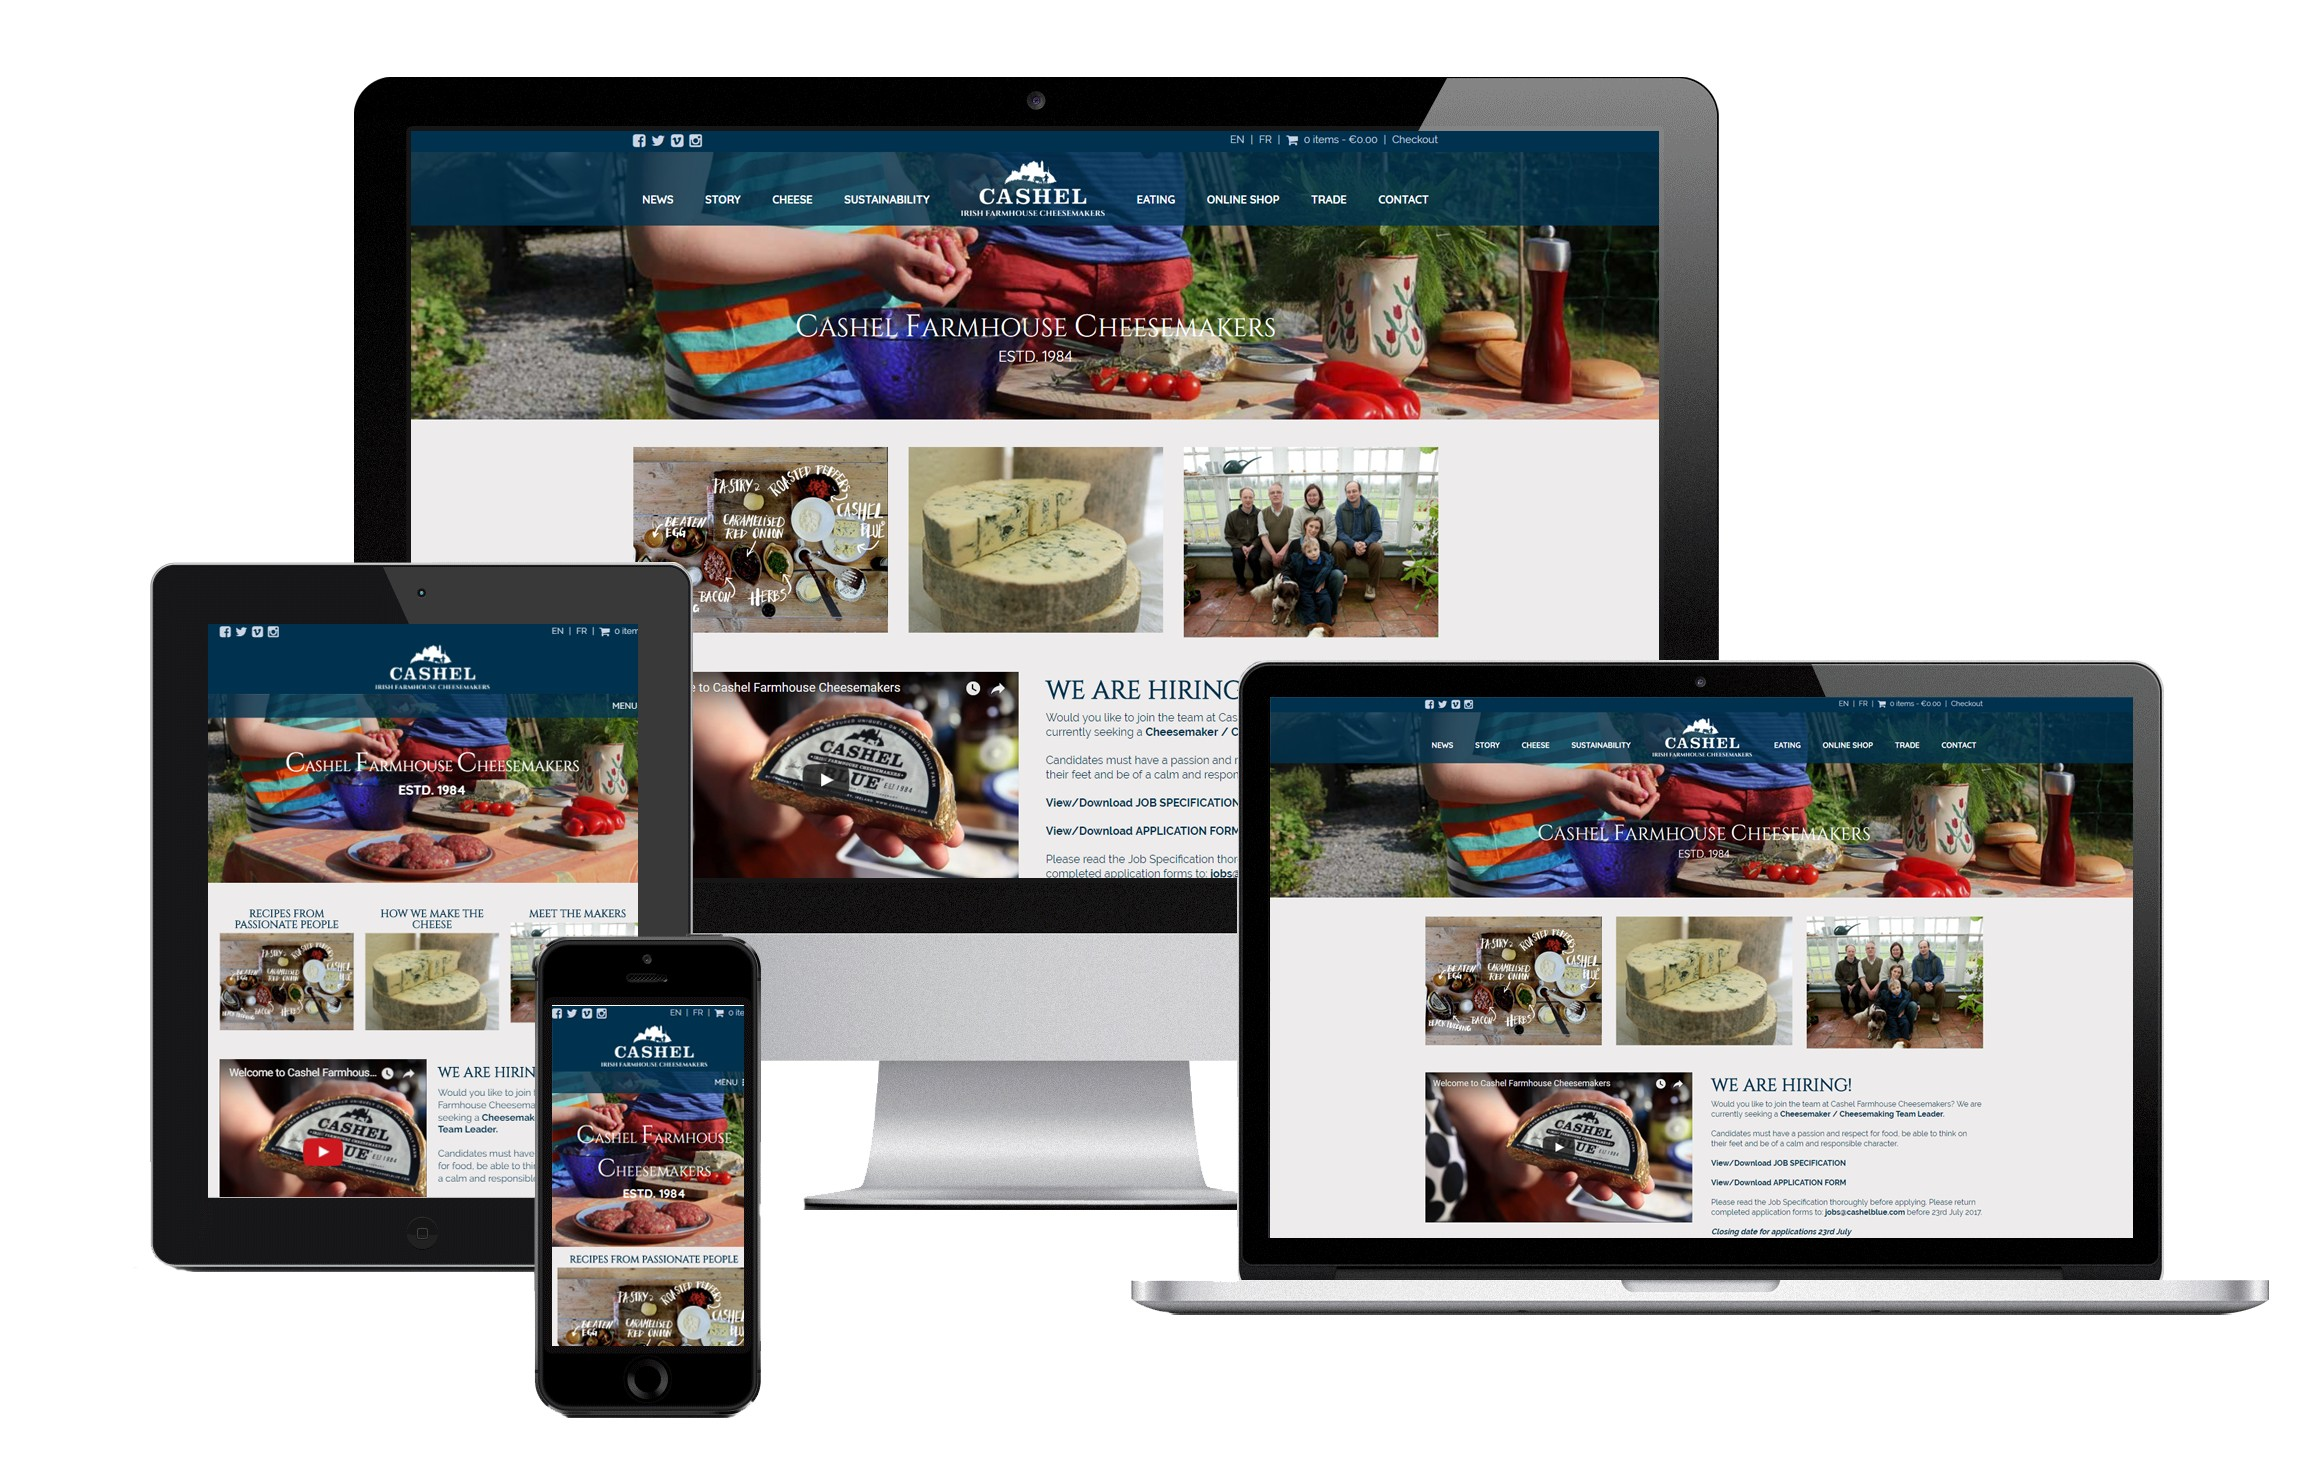 Responsive Website Design Images for Inspiration Marketing's Website